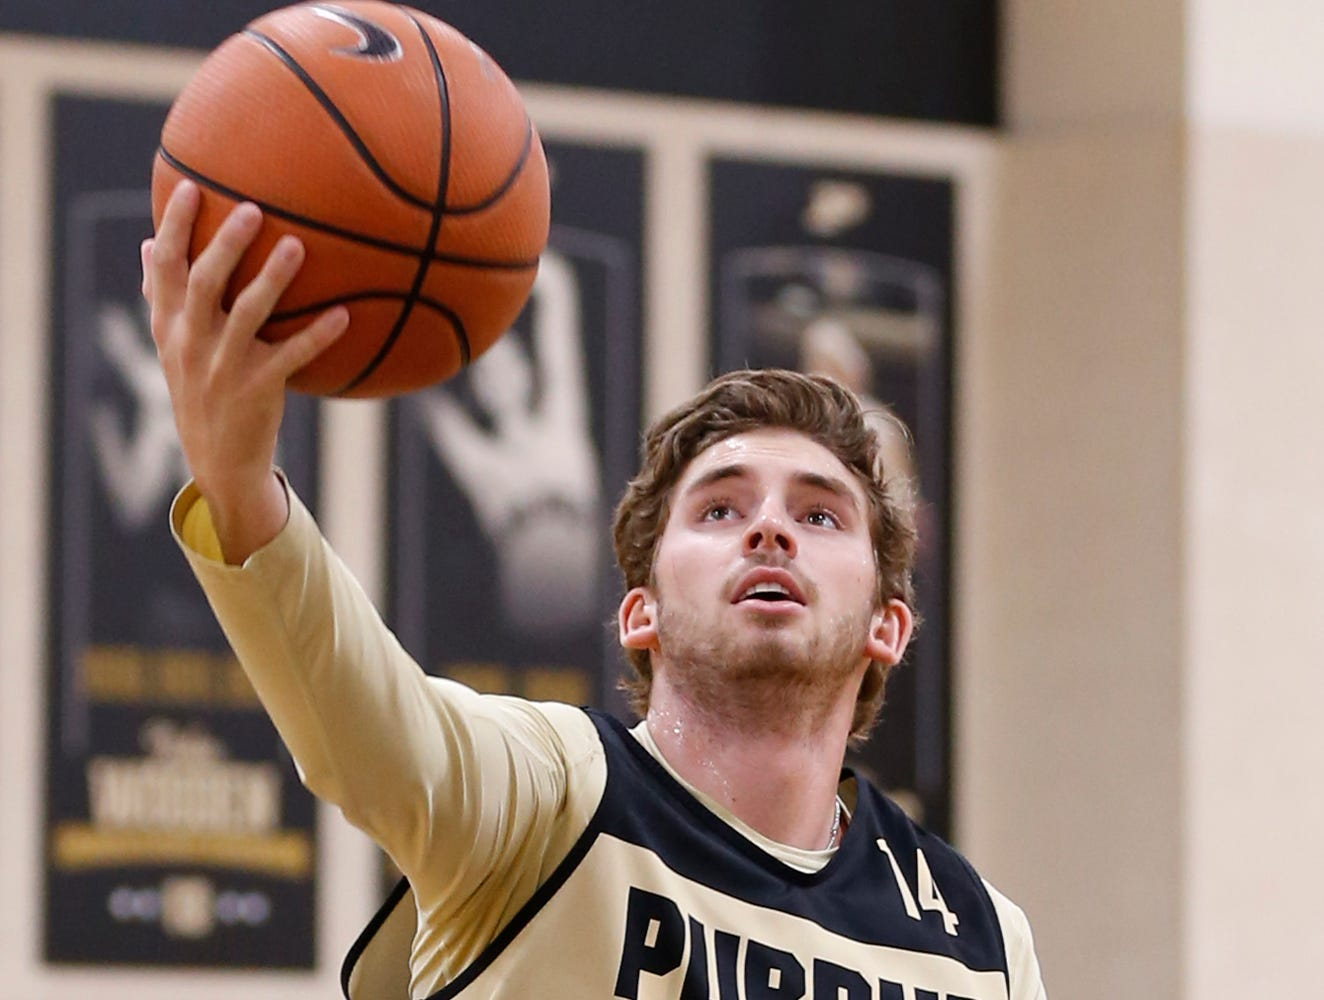 Ryan cline with a layup during the first official practice of the season for Purdue men's basketball Tuesday, September 25, 2018, at Cardinal Court in Mackey Arena.